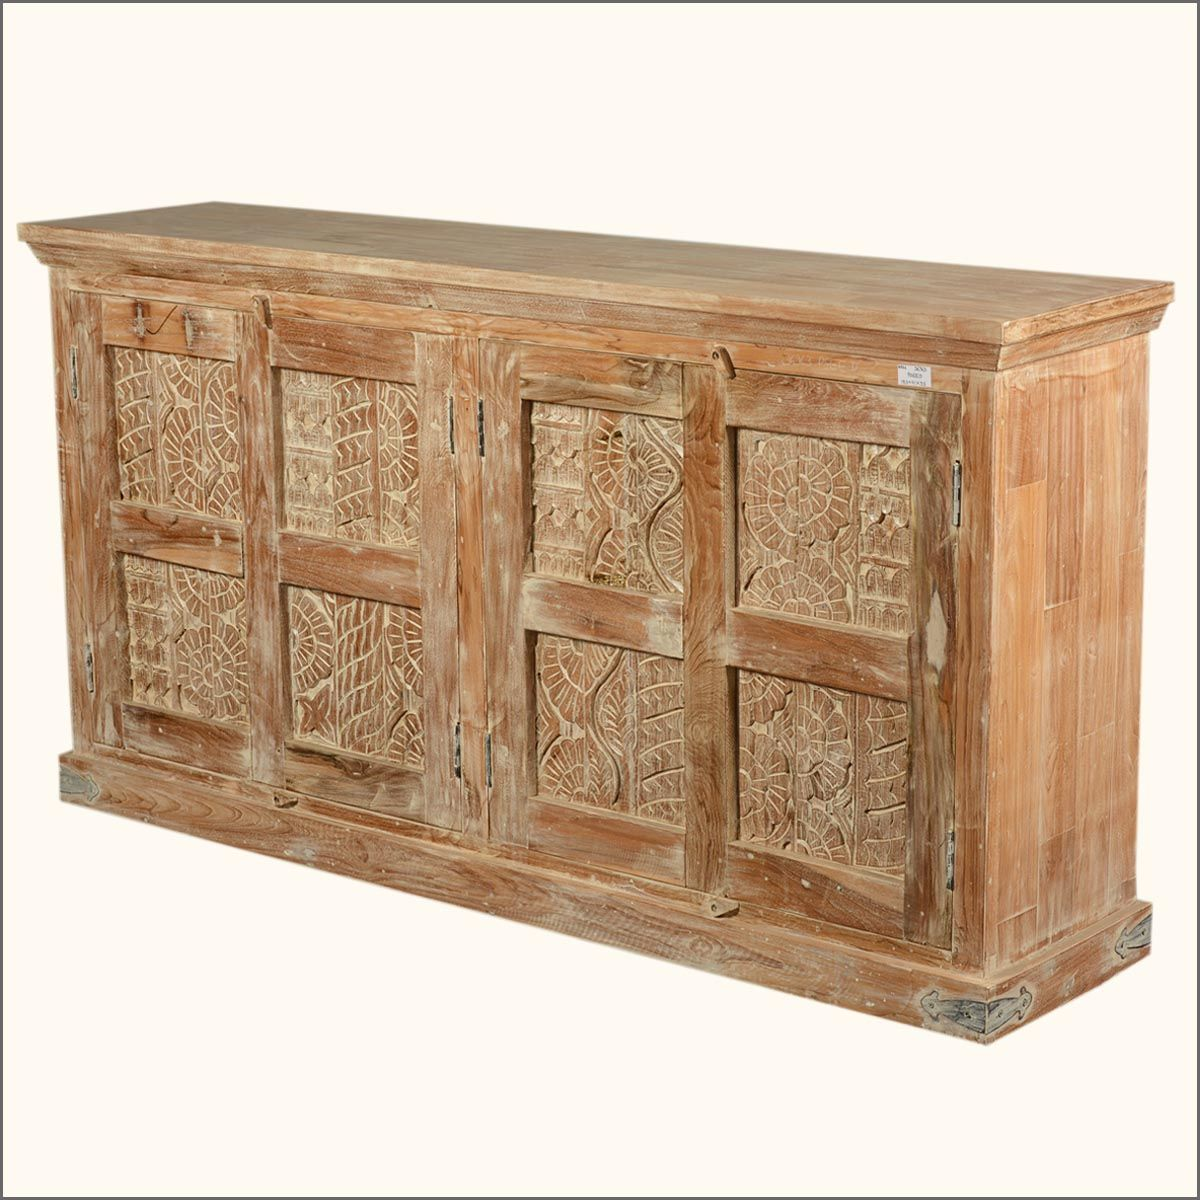 72 Reclaimed Wood Nottingham Hand Carved Large Buffet Sideboard Reclaimed Wood Sideboard Rustic Storage Cabinets Rustic Sideboard